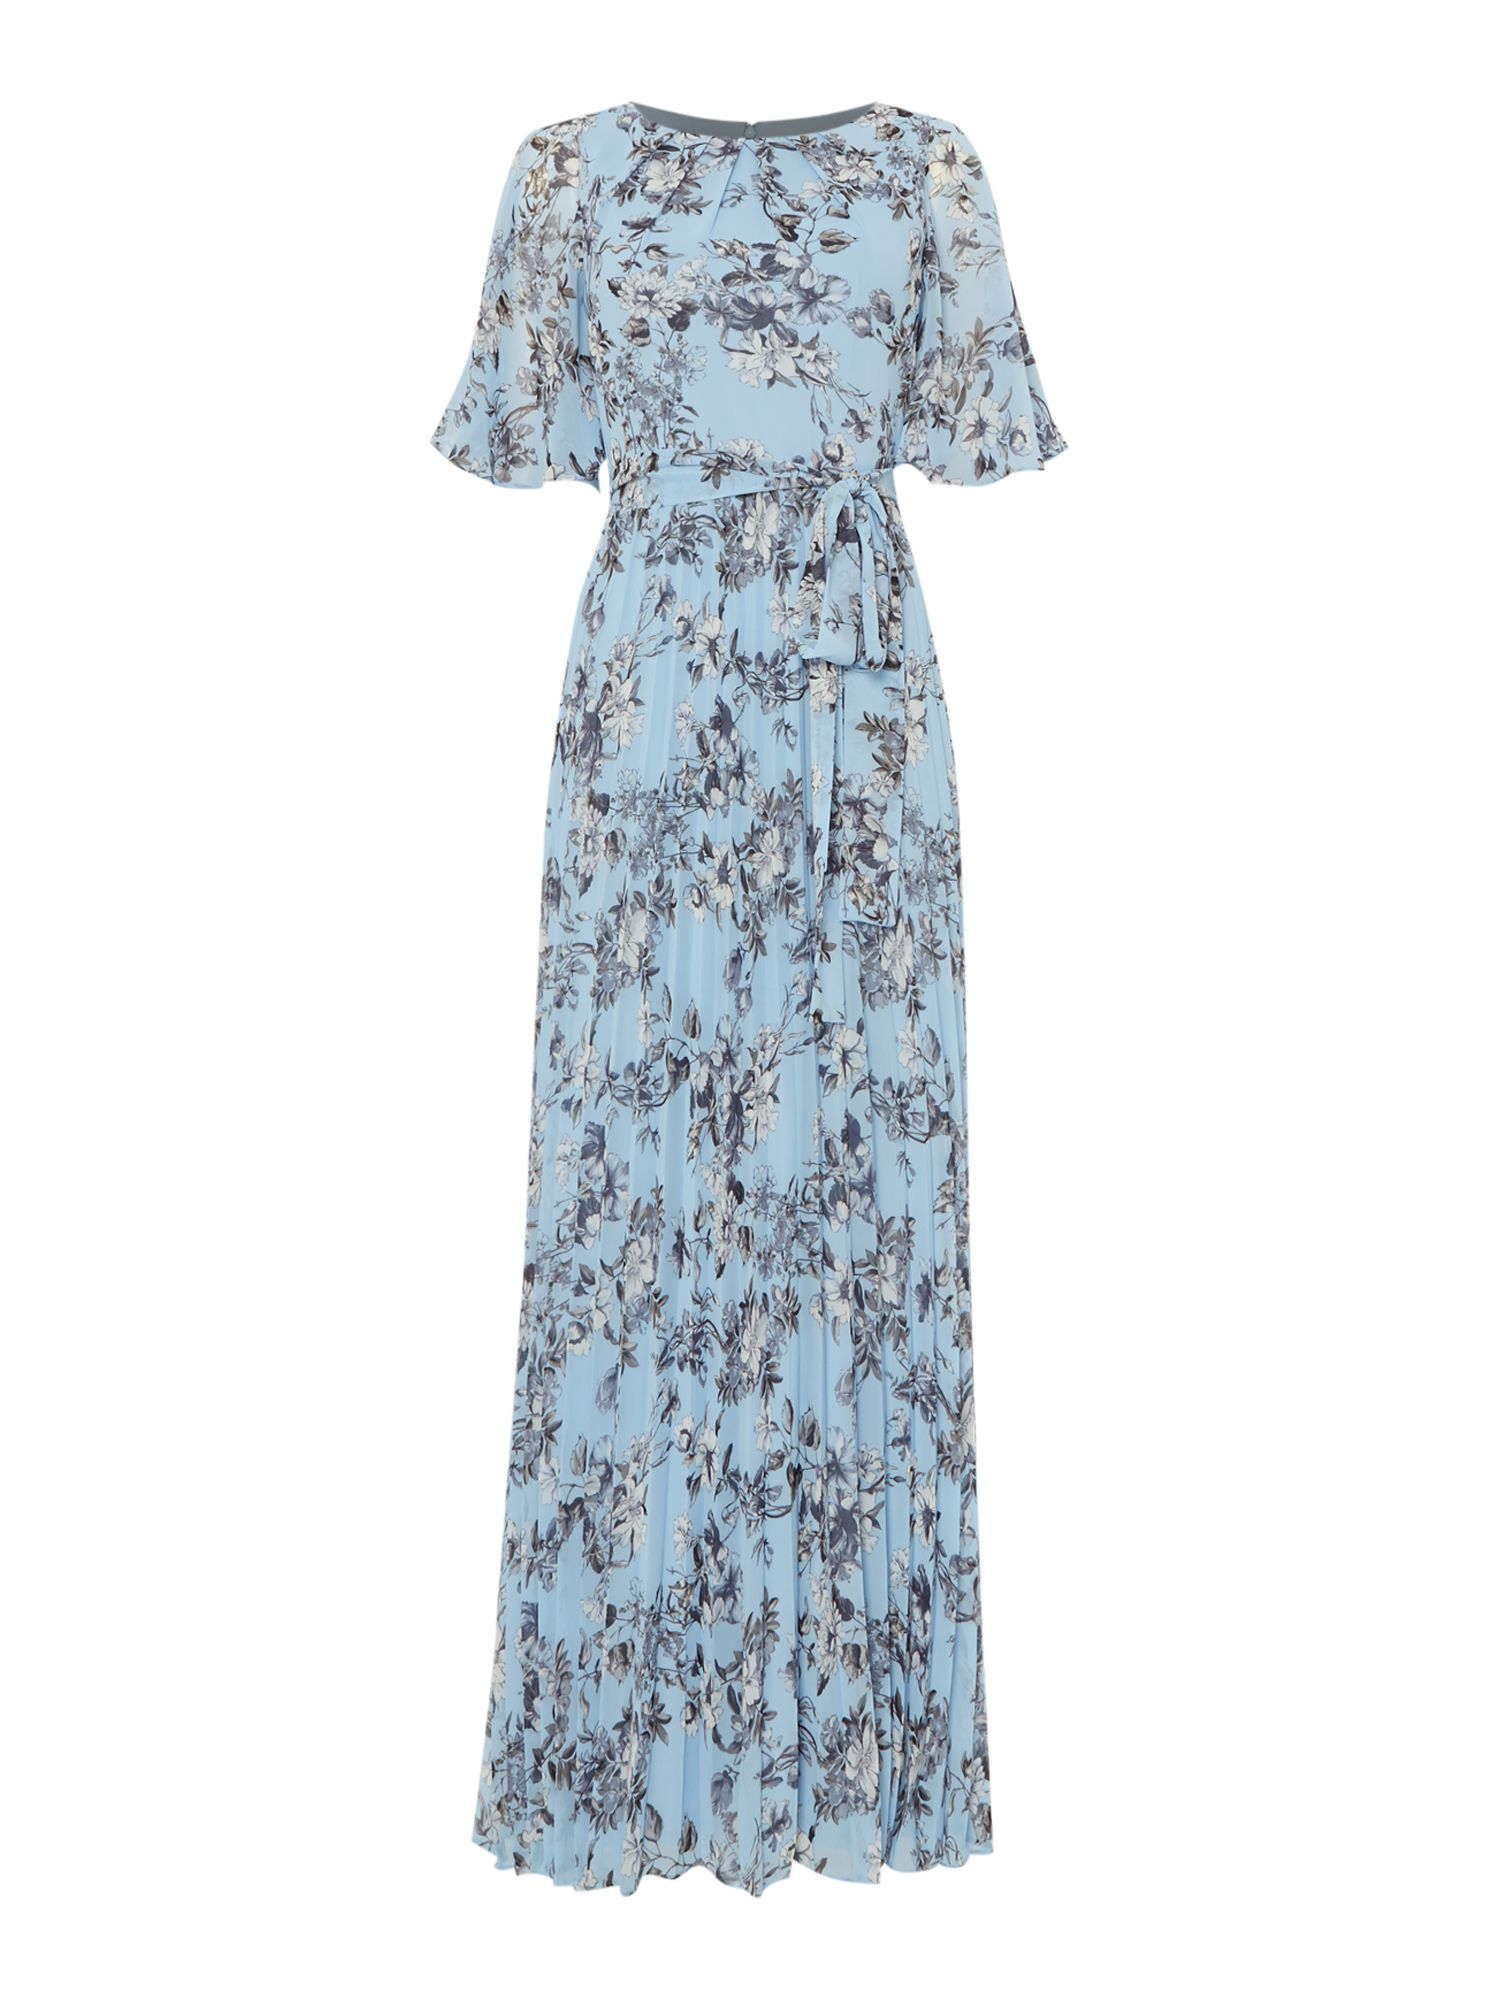 Eliza J Cold shoulder floral pleated maxi dress, Blue Multi